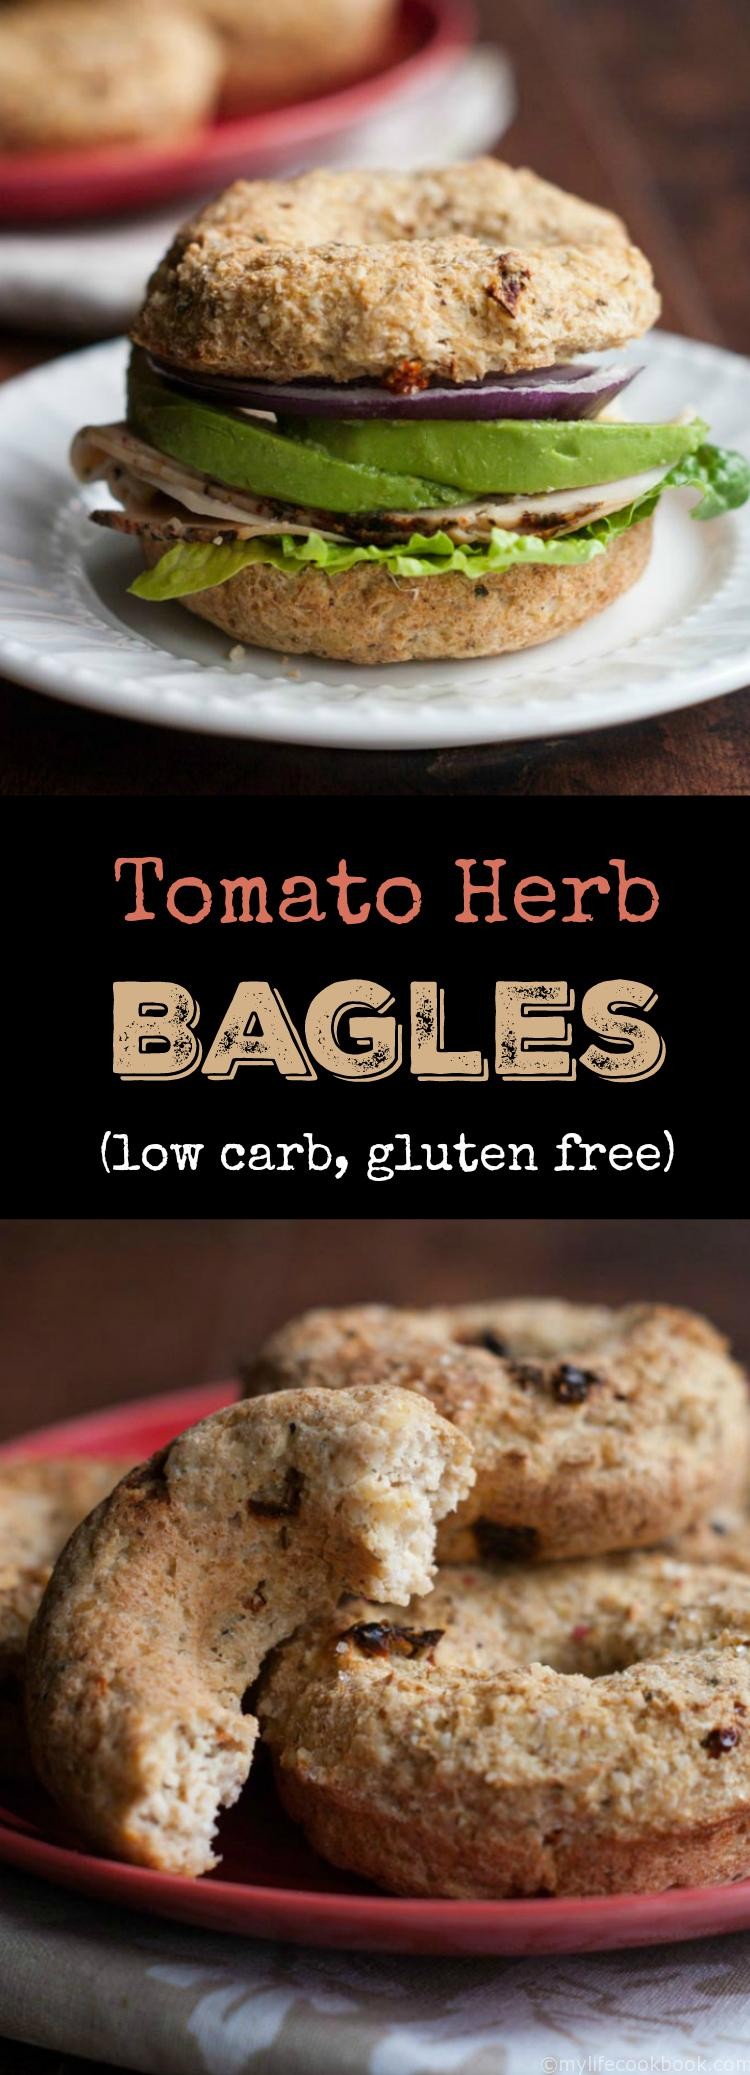 These tomato and herb bagels are low carb, gluten free and full of fiber. Great toasted with cream cheese or as a sandwich and perfect for a low carb diet!